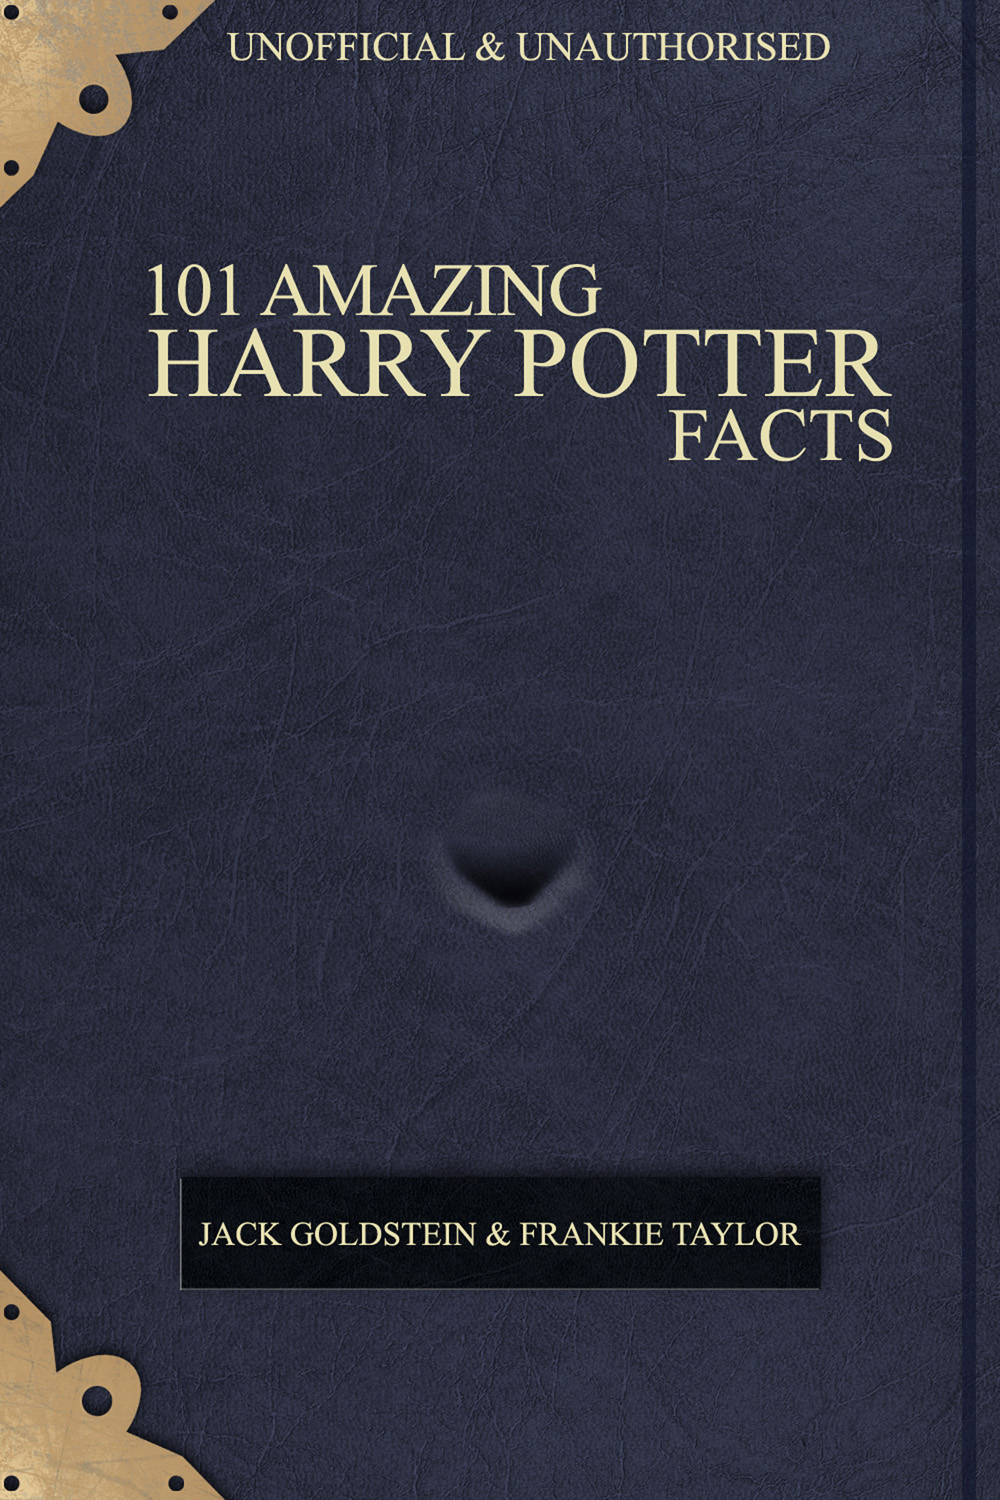 101 Amazing Harry Potter Facts By: Jack Goldstein